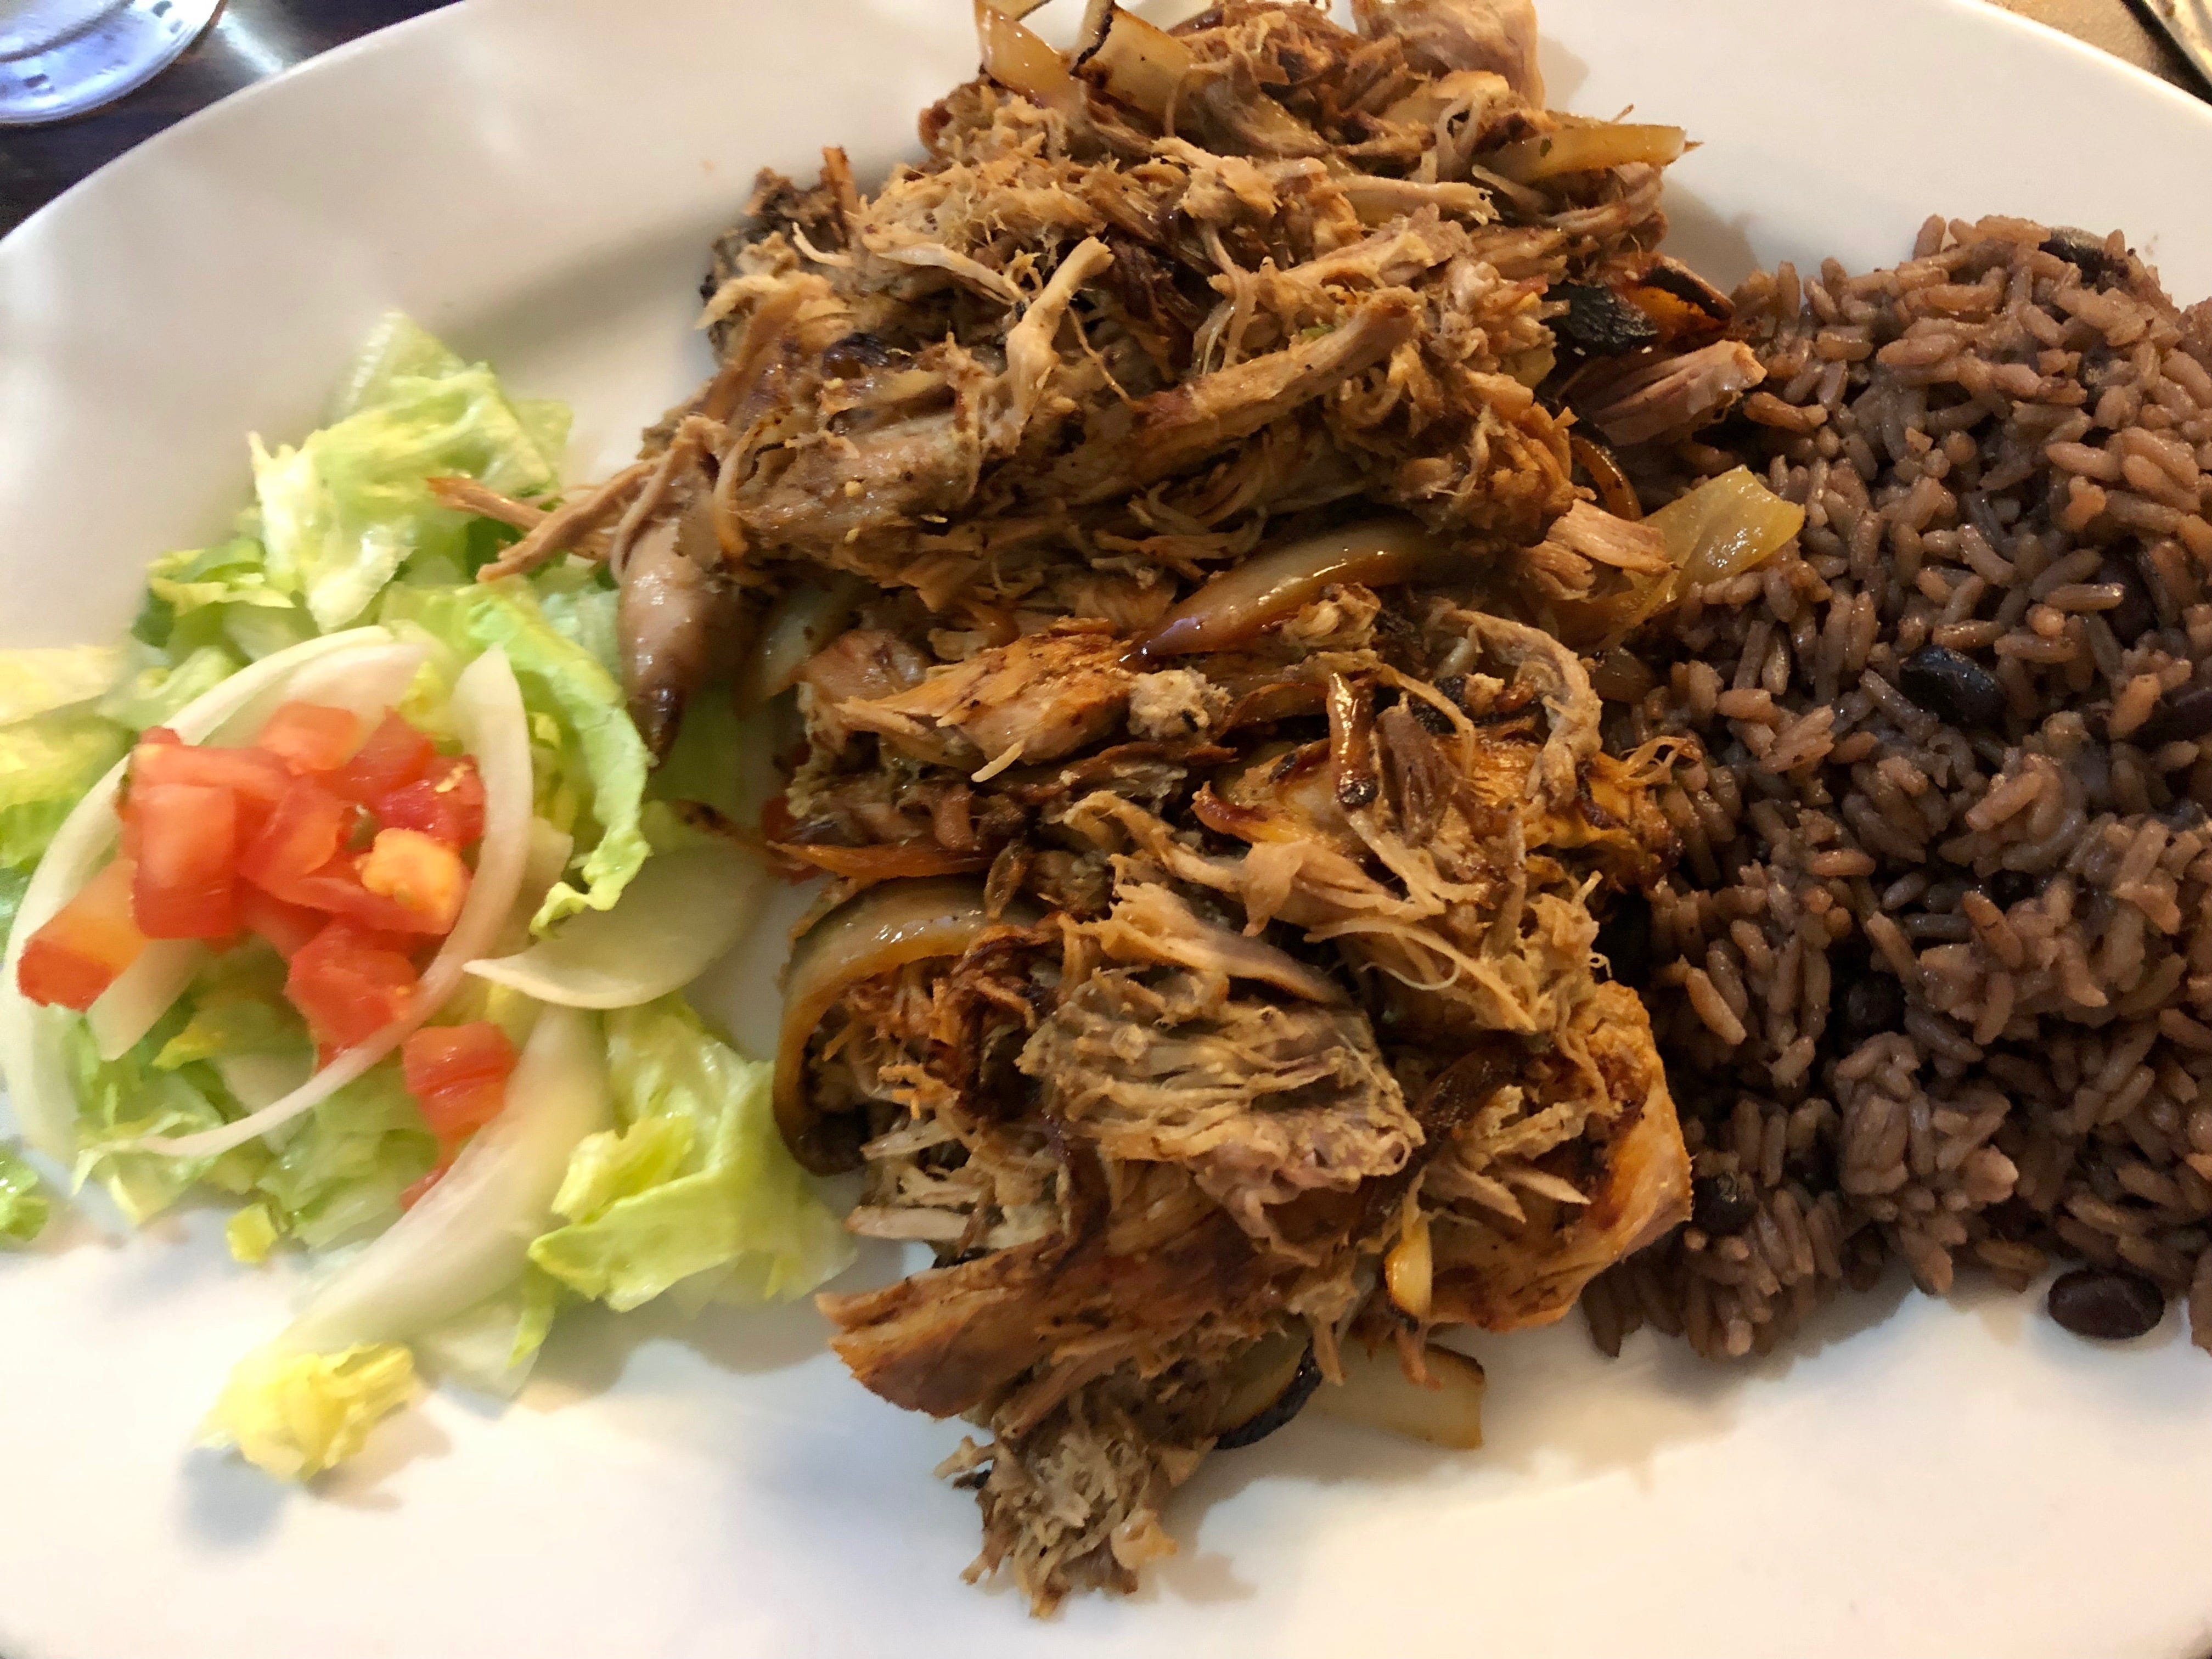 Cuban roasted pork laced with grilled onions at El Meson Latin Cuisine Bar & Grill in Bonita Springs.